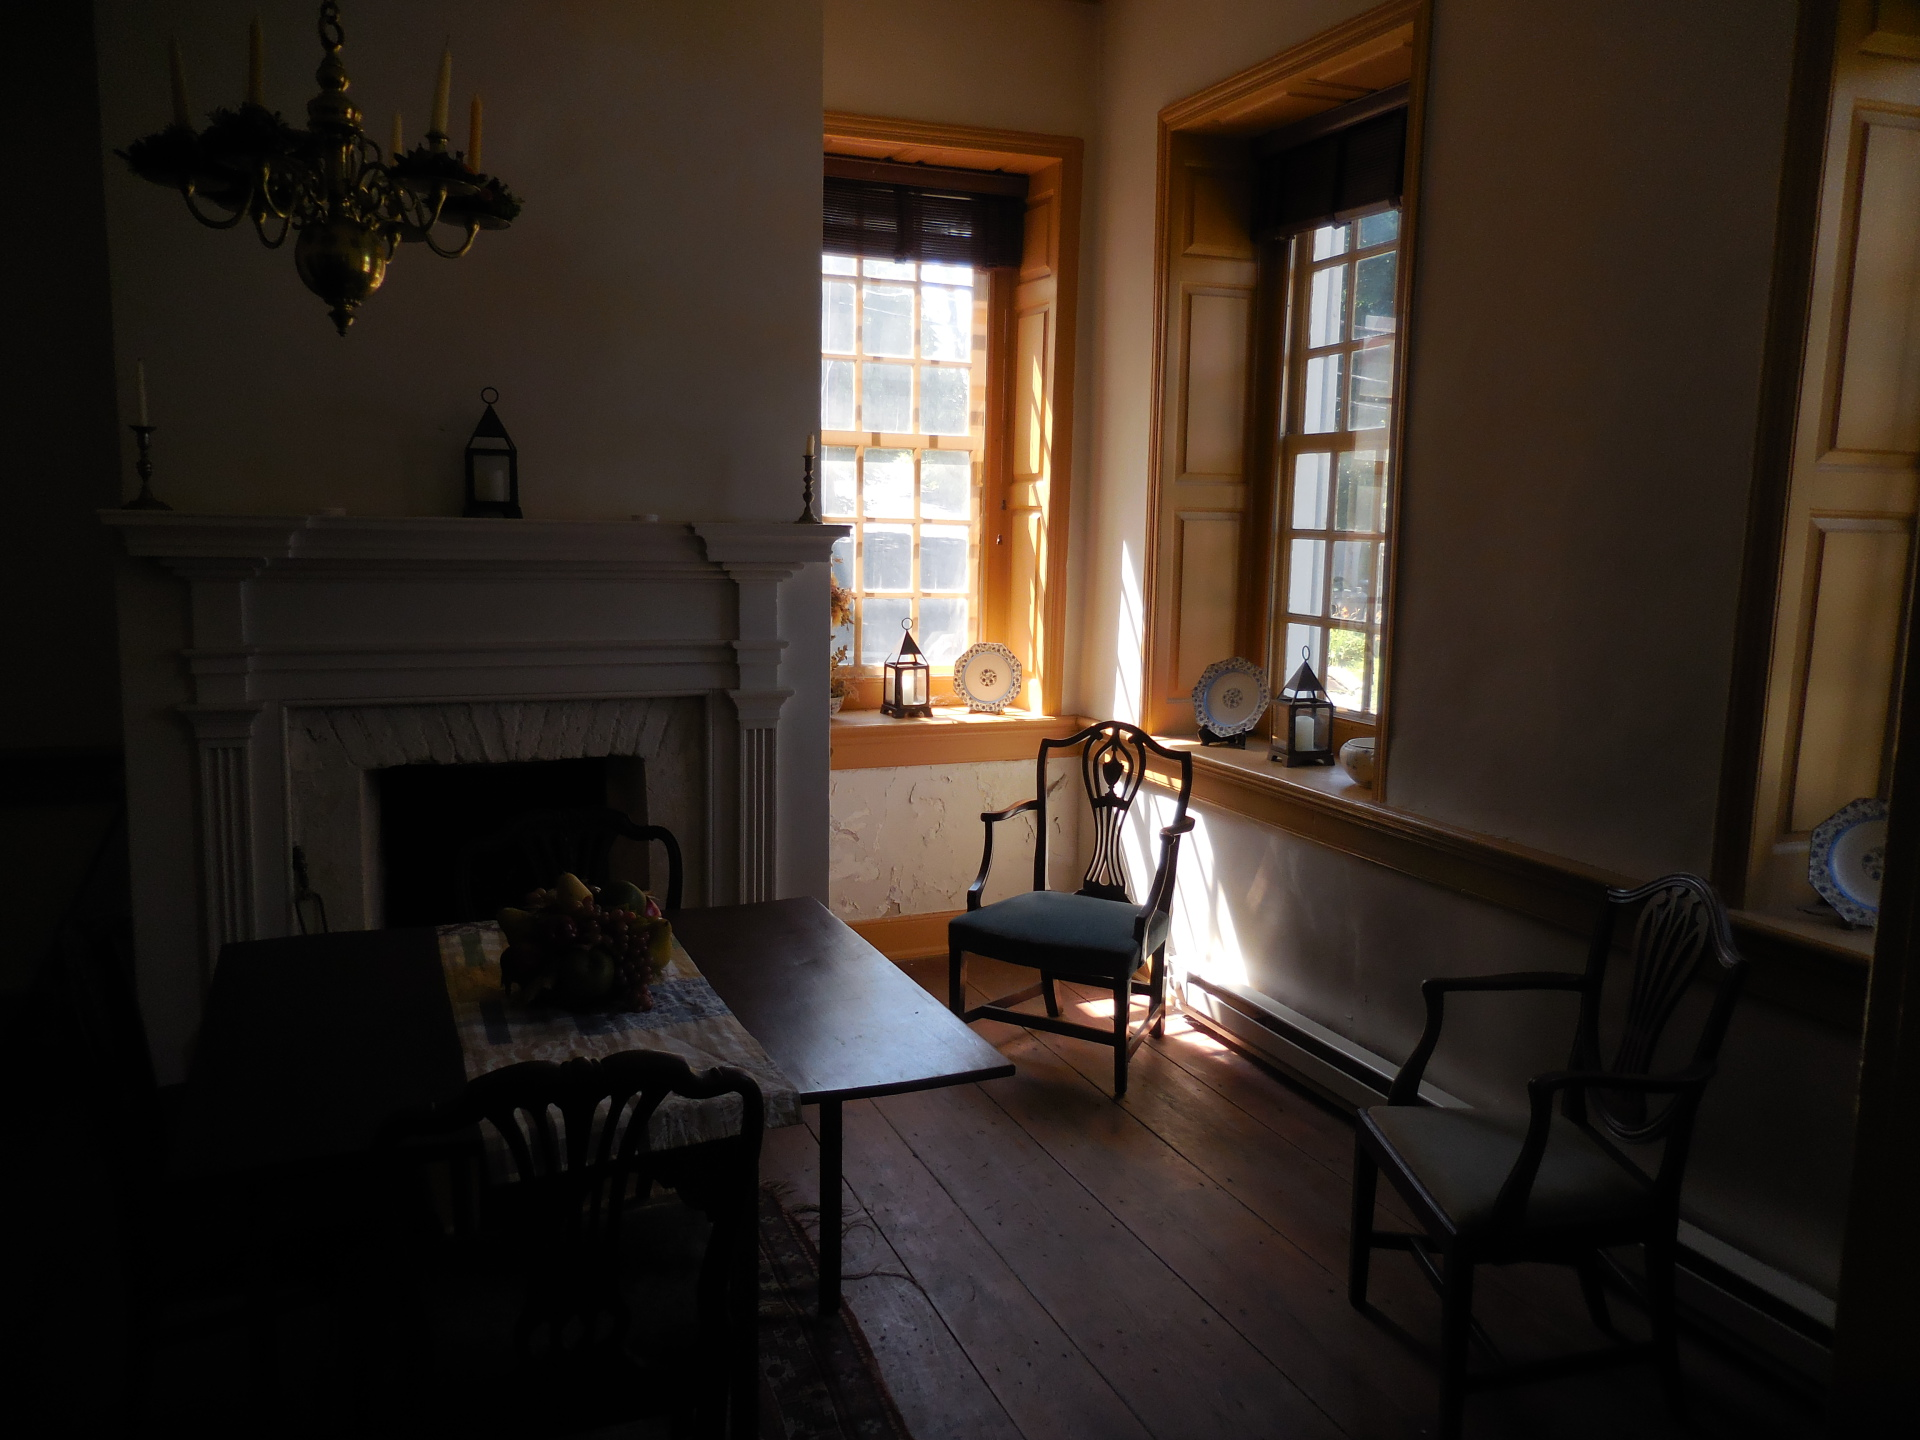 The George Taylor house: A window to the Declaration of Independence, a light in a dark time